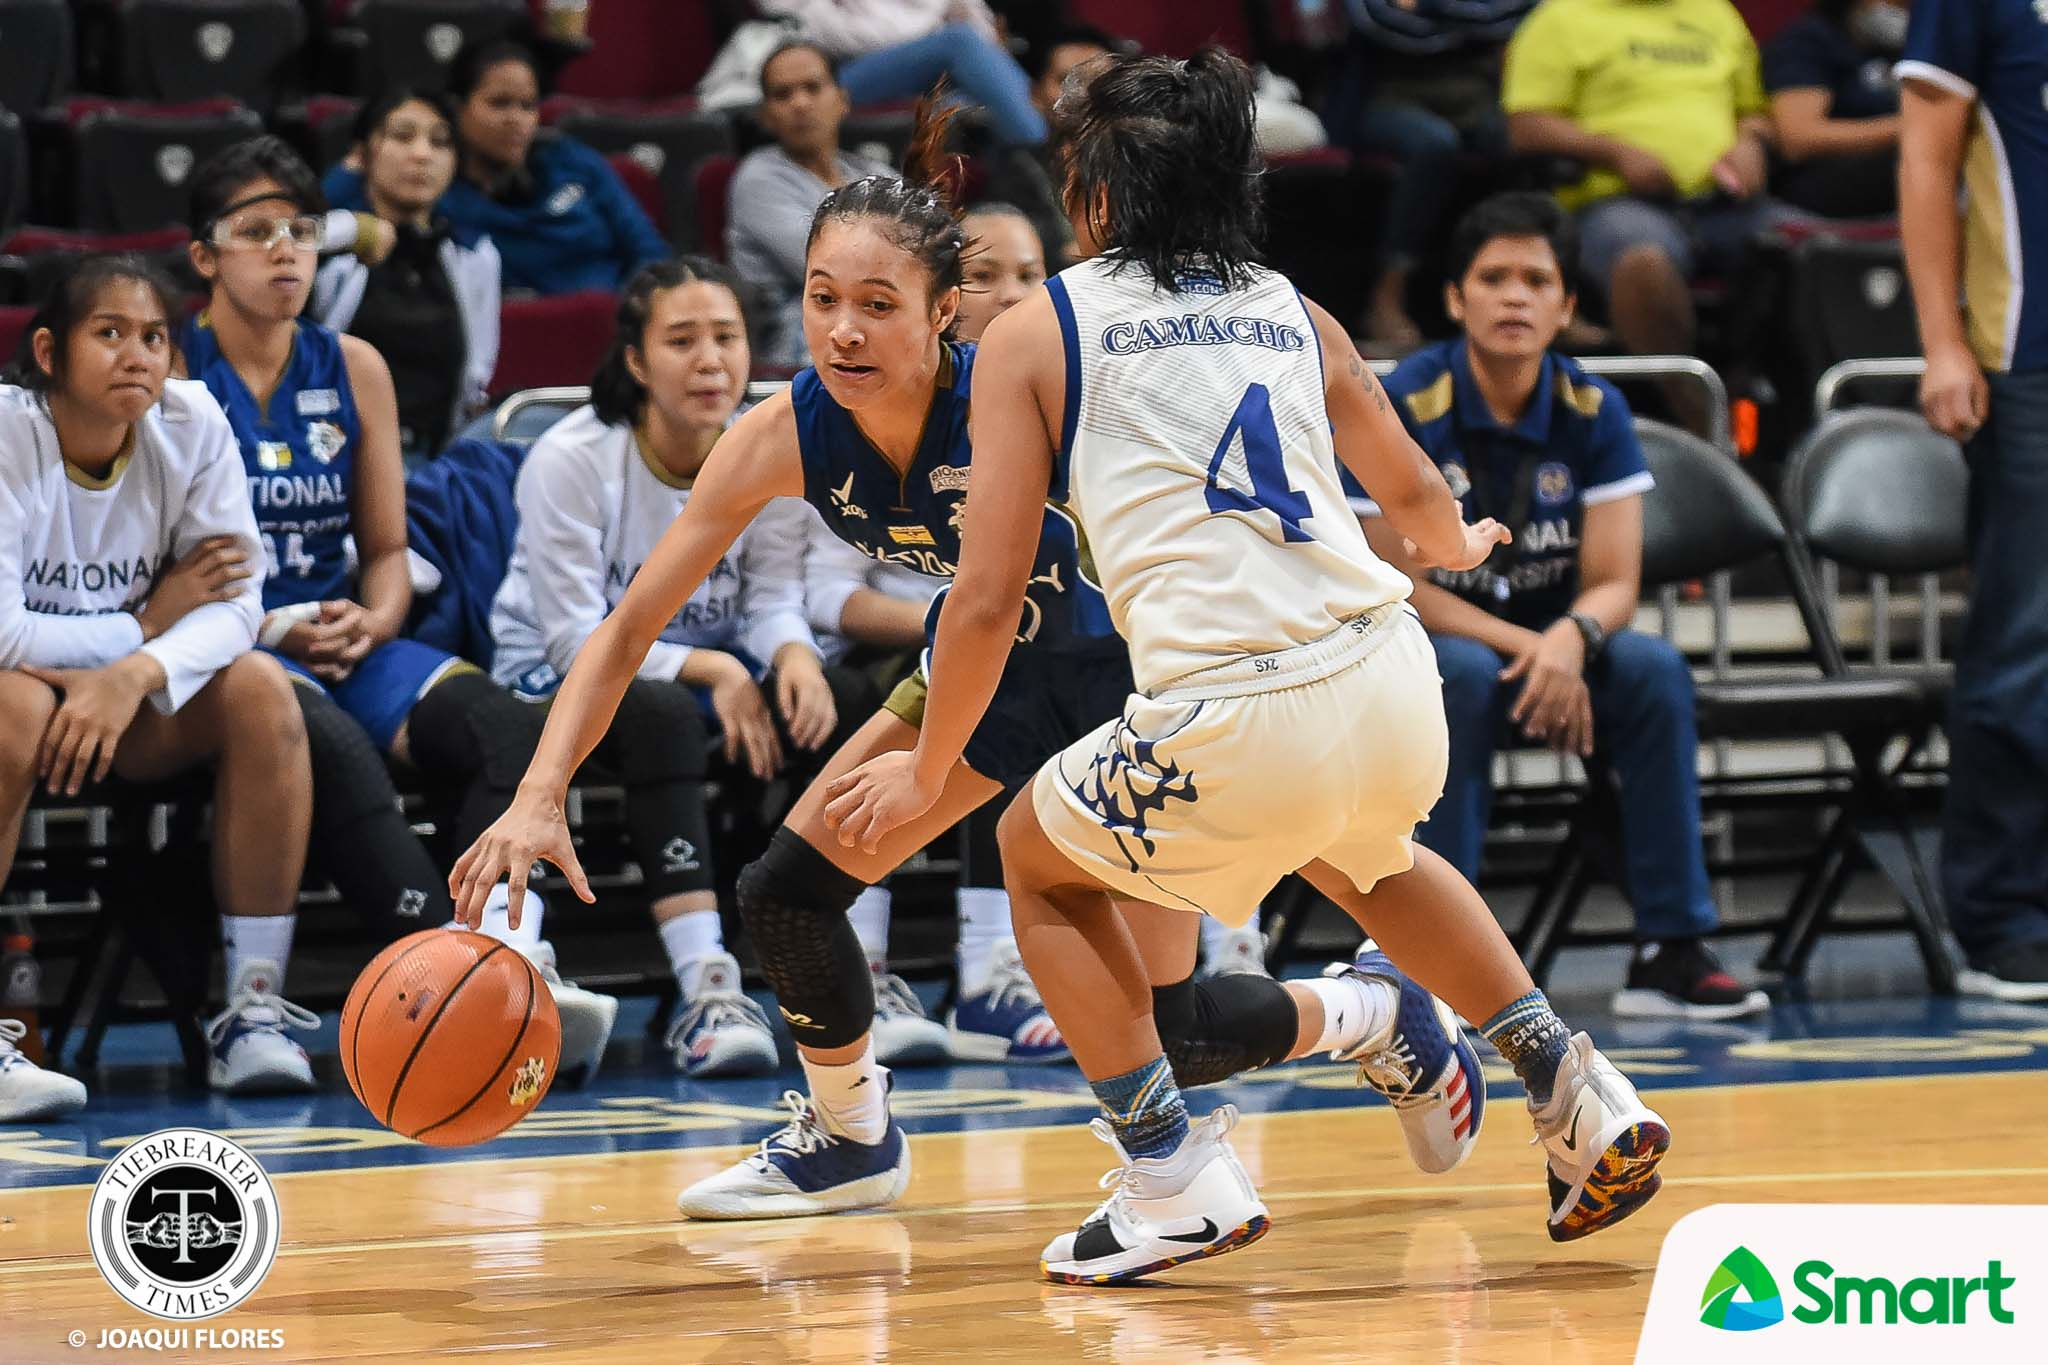 Tiebreaker Times Nothing personal as Kaye Pingol instigates NU rout of Adamson Basketball News NU UAAP  UAAP Season 81 Women's Basketball UAAP Season 81 Patrick Aquino NU Women's Basketball Kaye Pingol